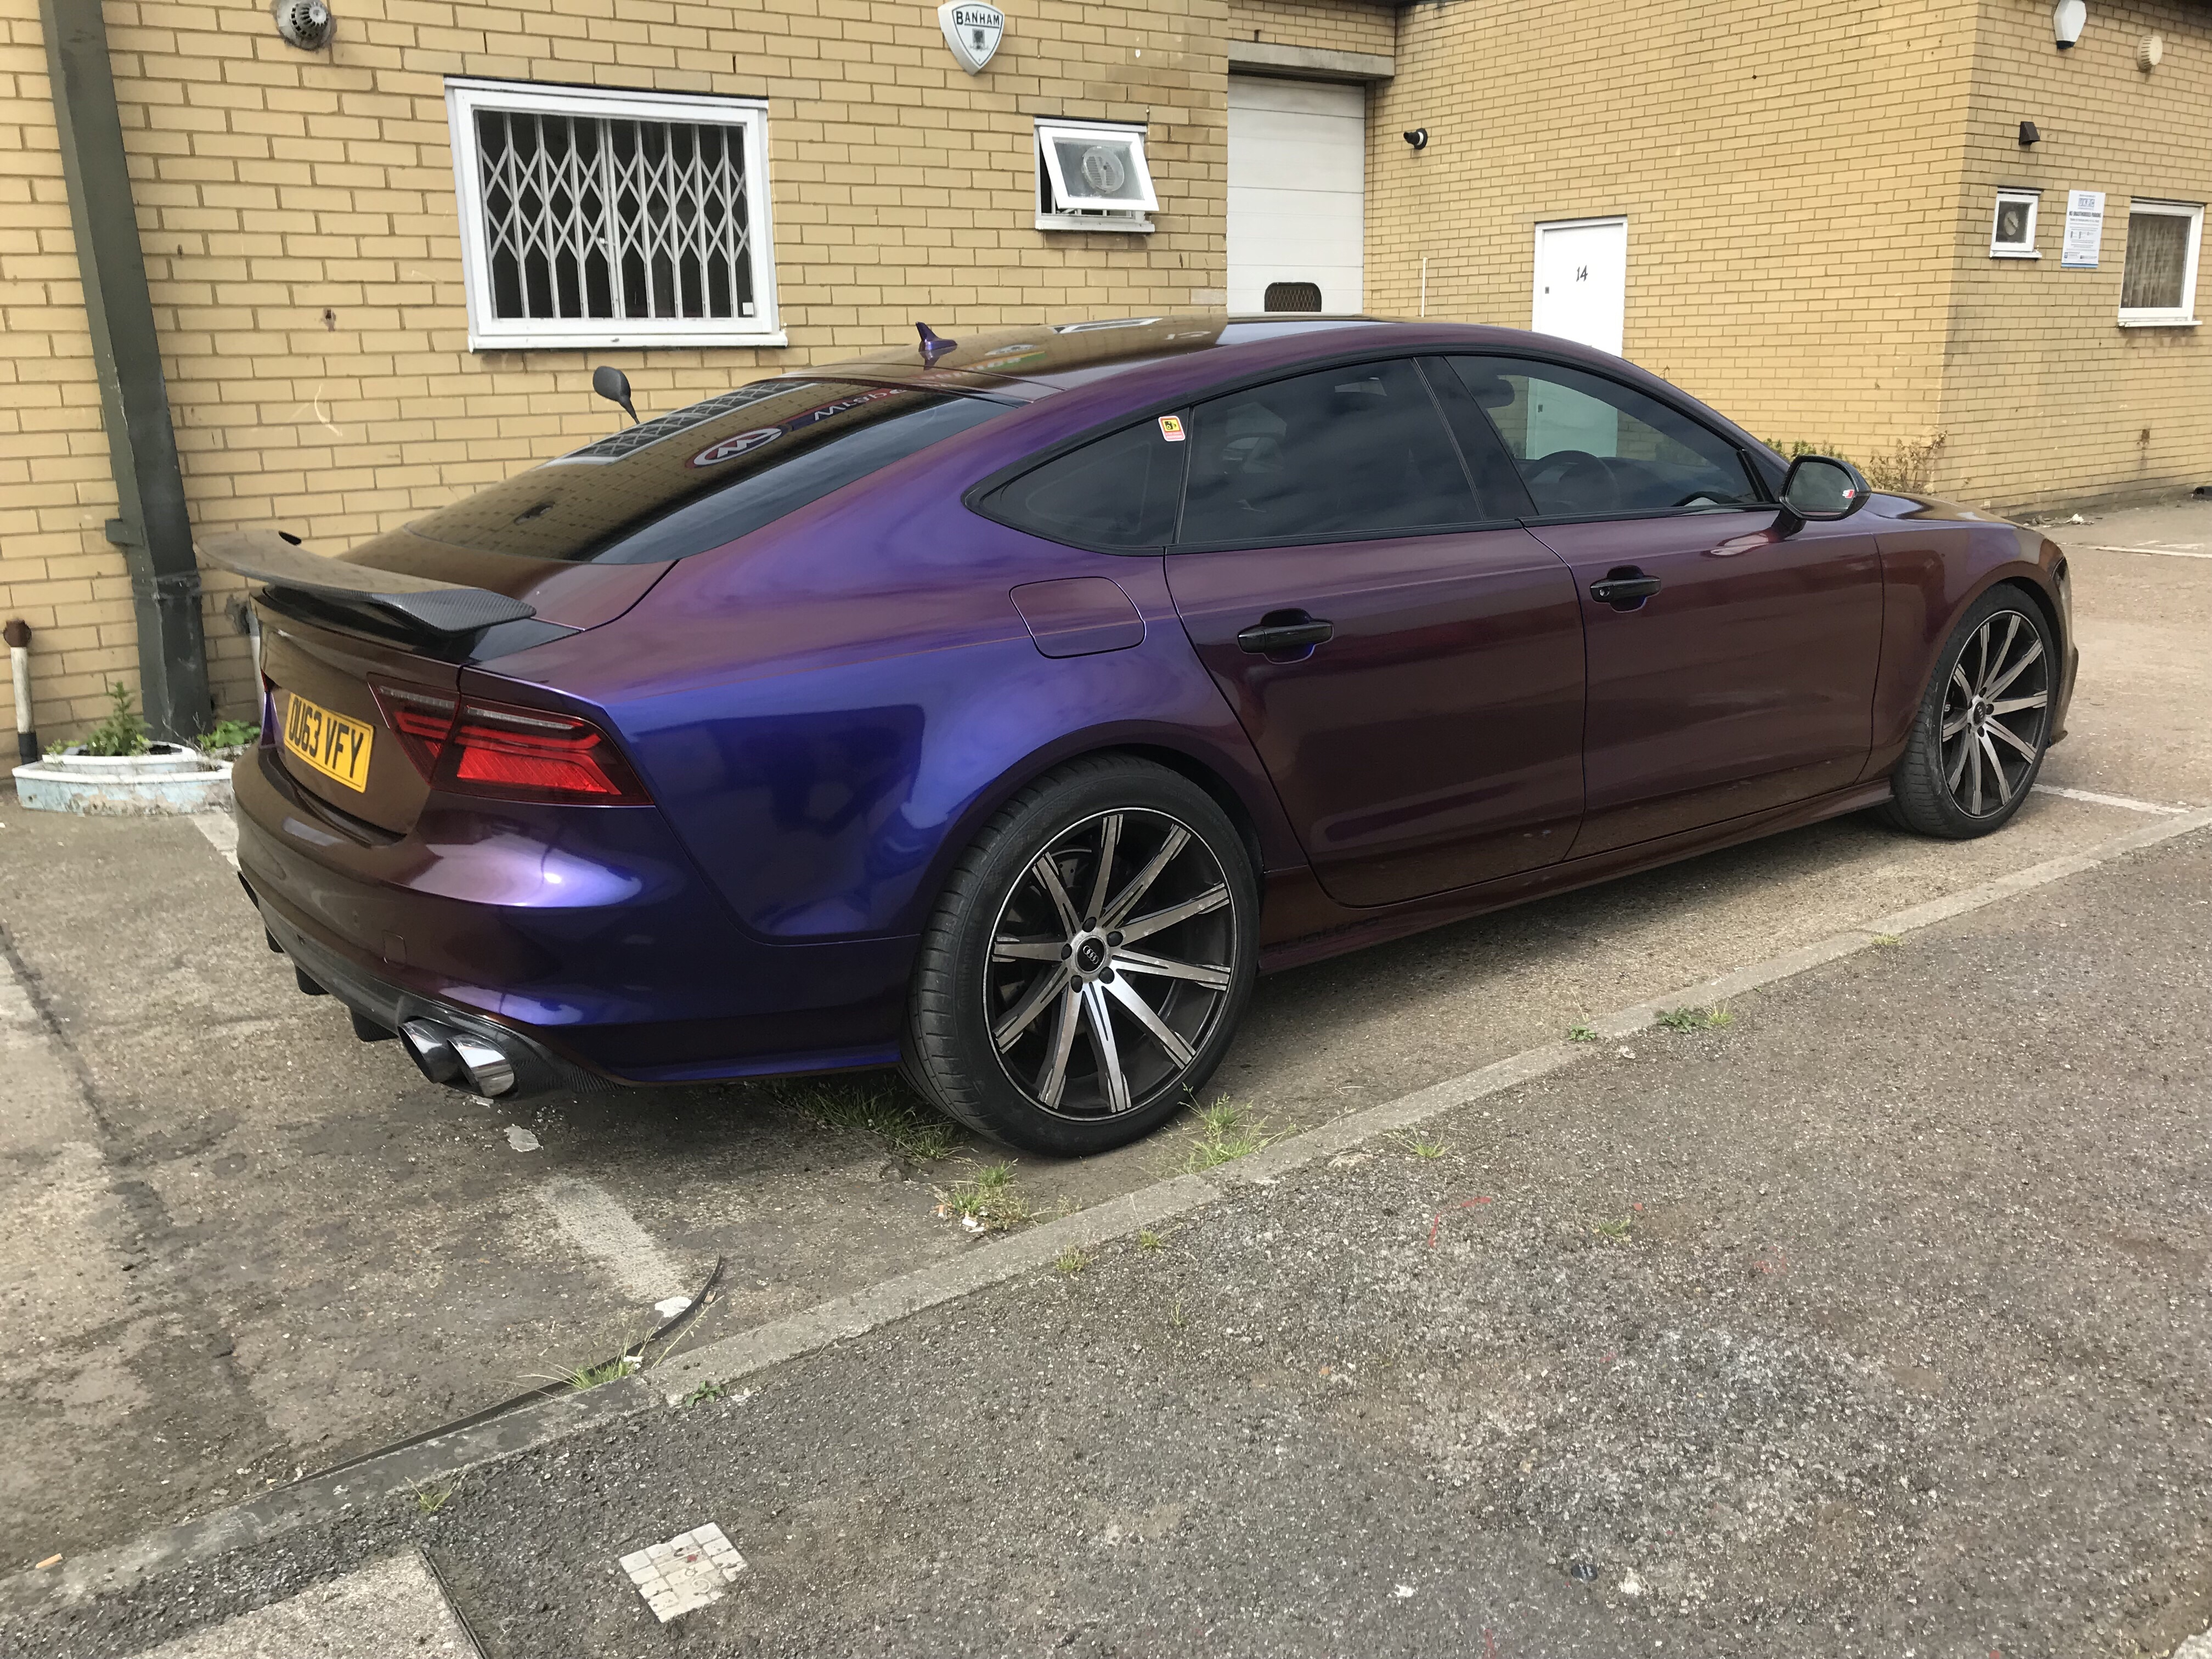 Audi A7 Car Wrap Wrapping Cars Car Wrap And Vehicle Branding London